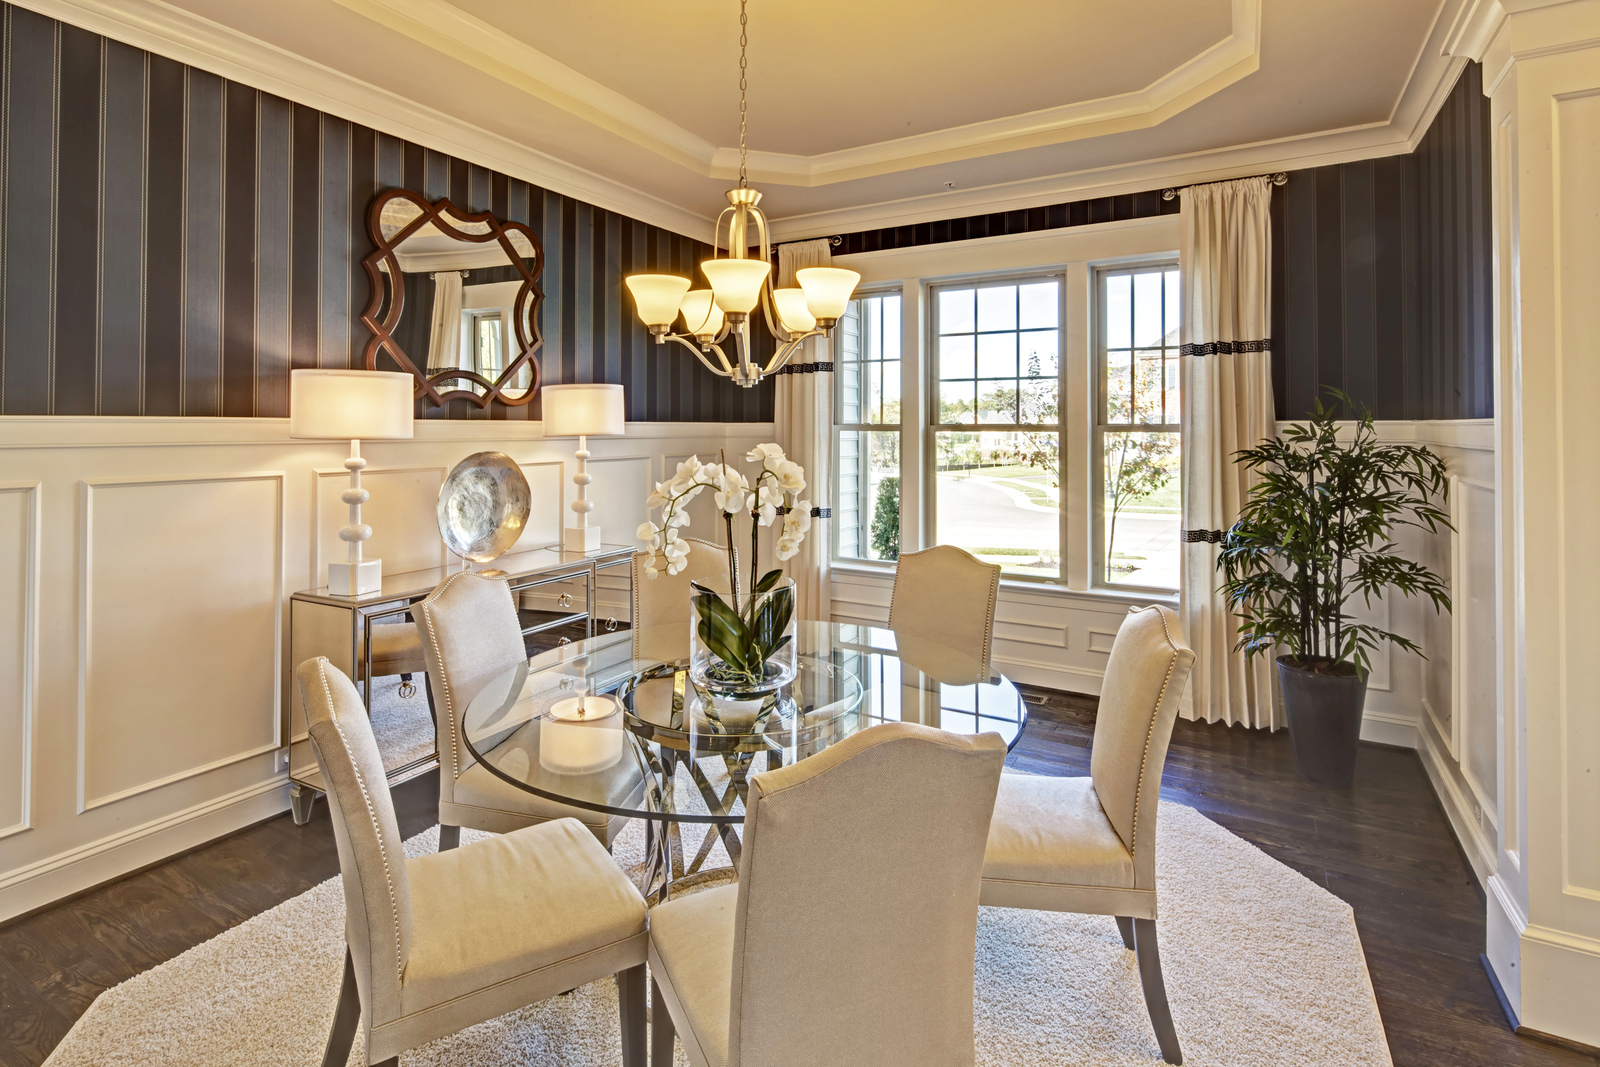 Your formal Dining Room is a wonderful place to entertain friends and family for holidays and events.